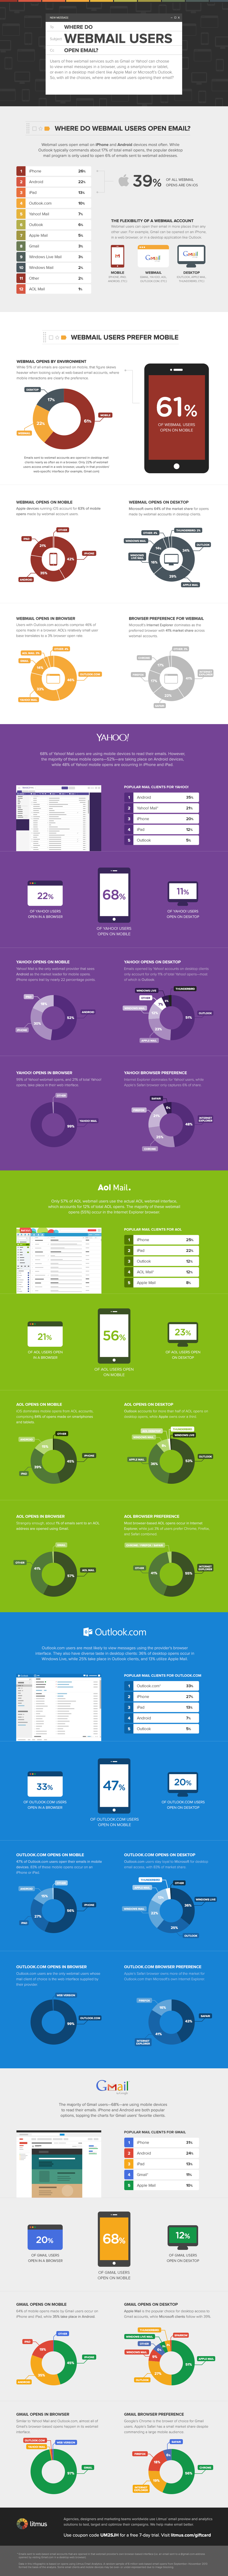 Where Do Webmail Users Open Email?